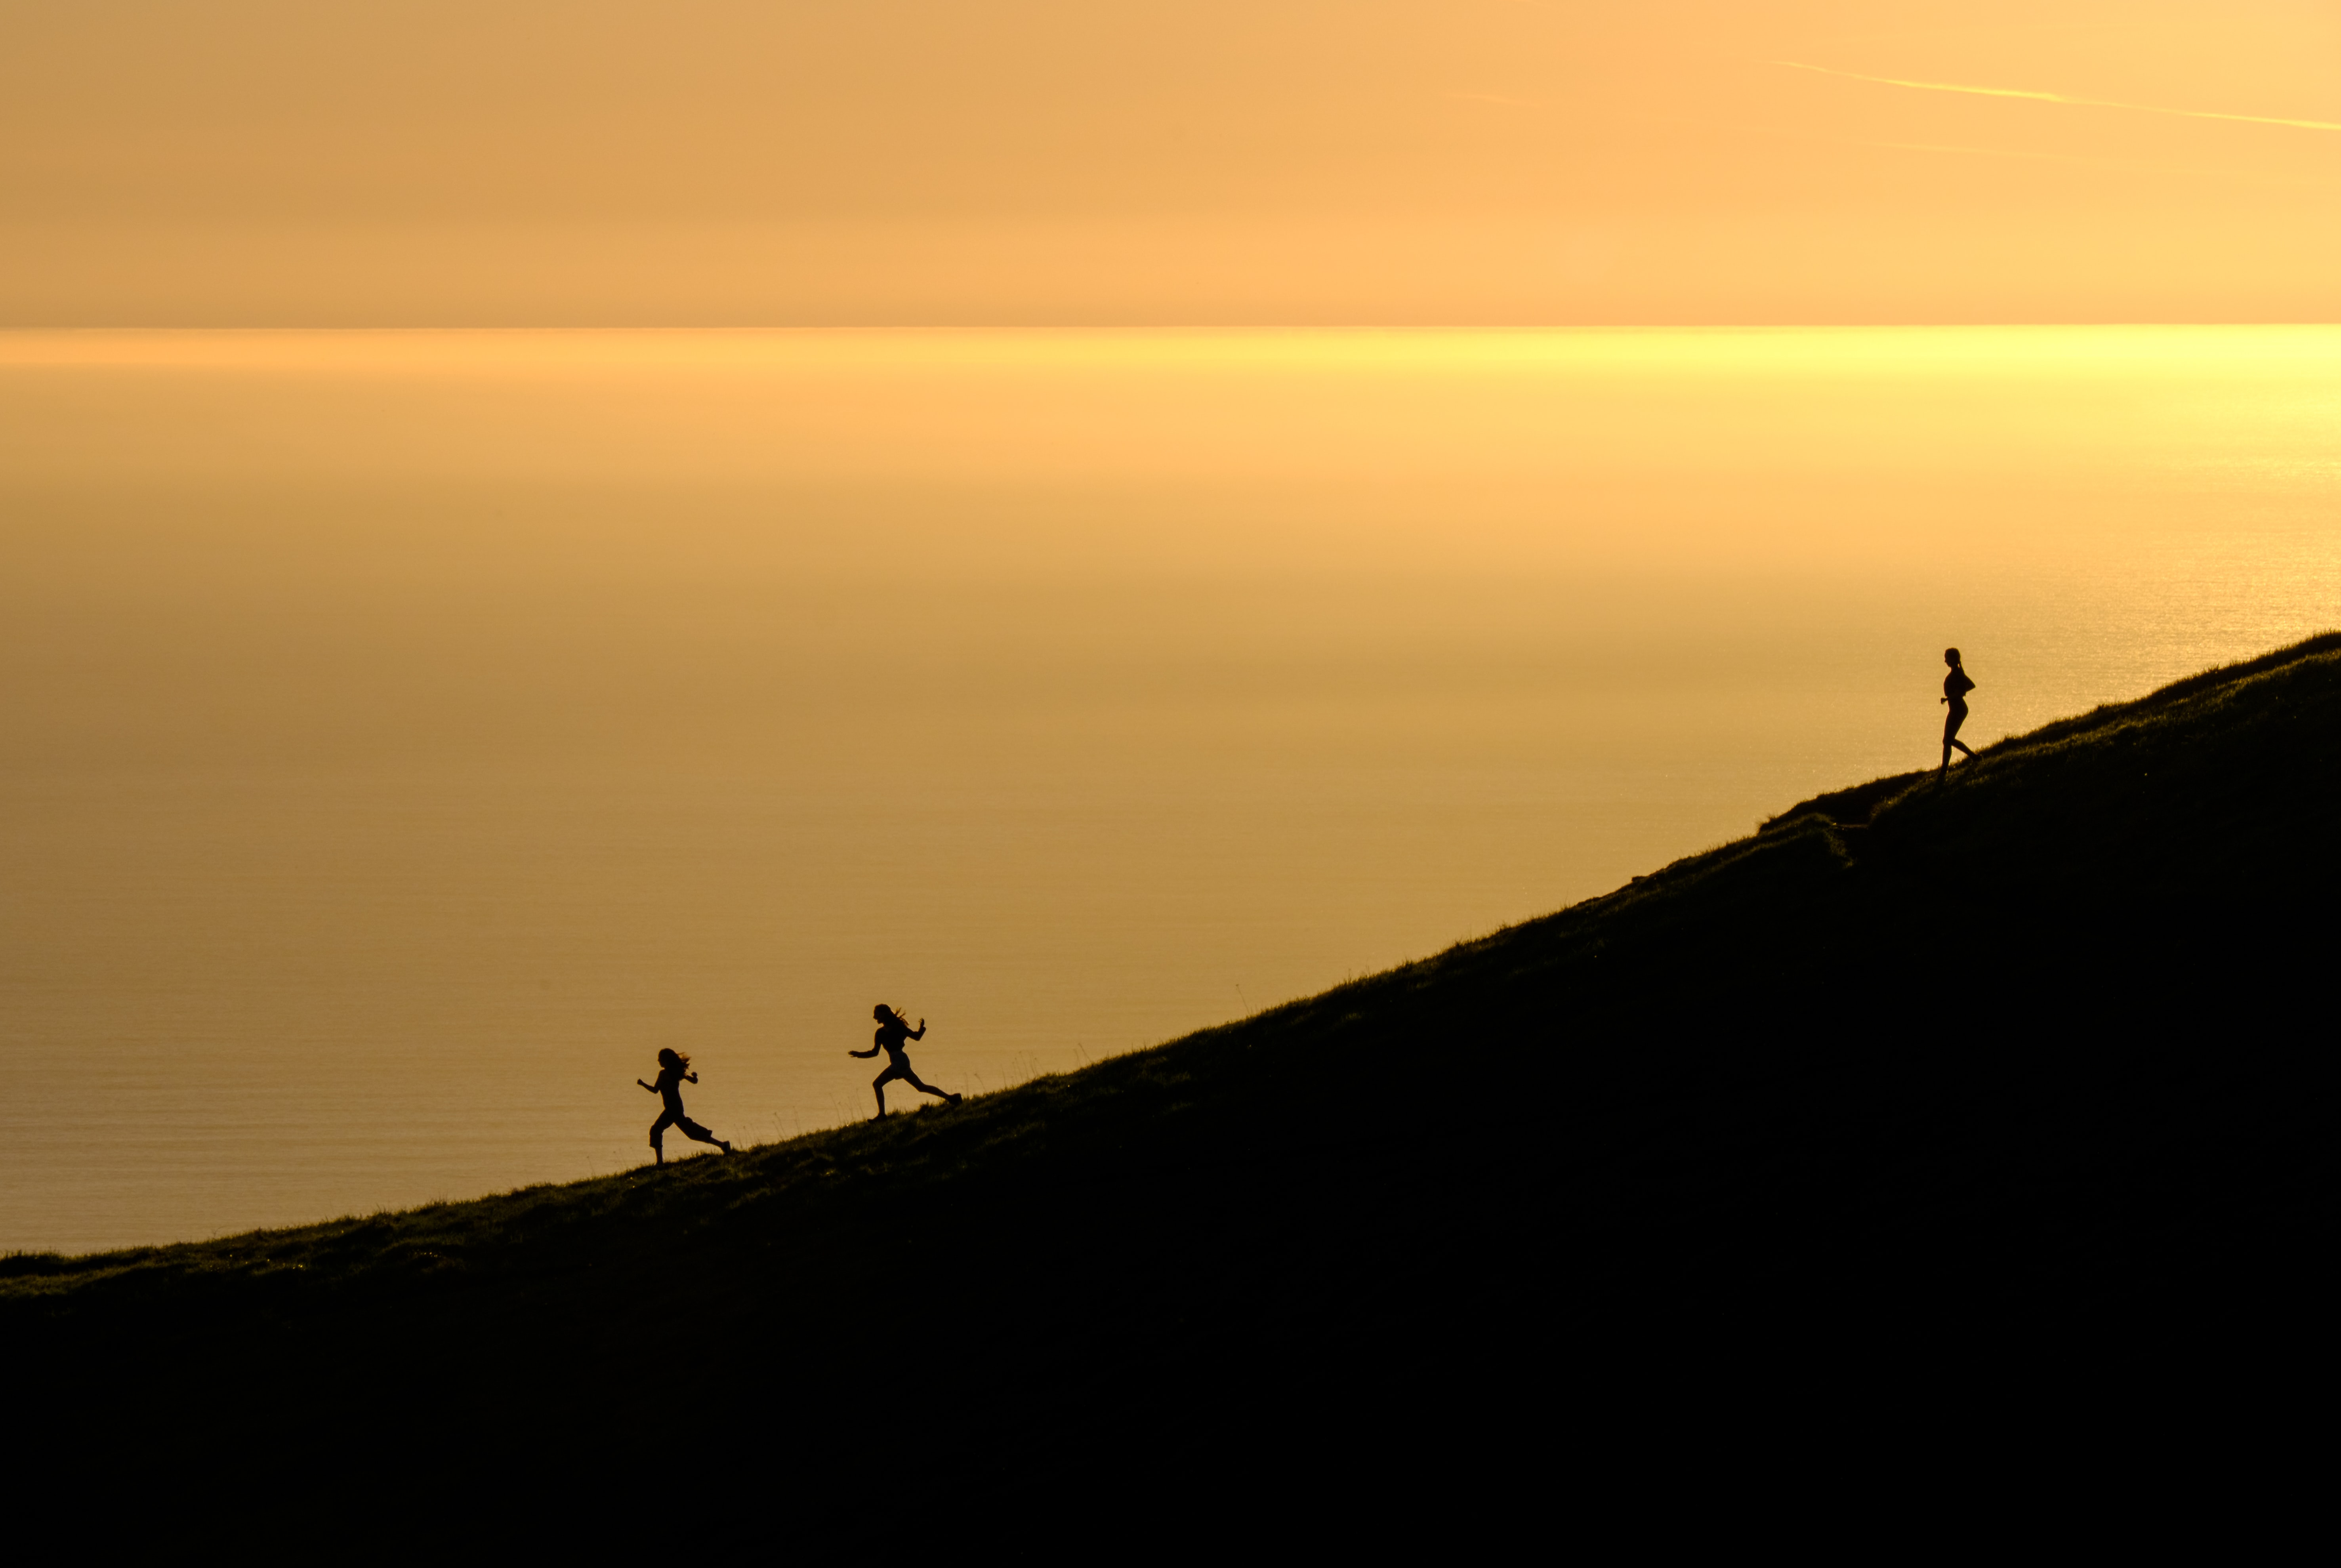 Three women energetically running down Mount Tamalpais as waters in the distance reflect the golden sunset